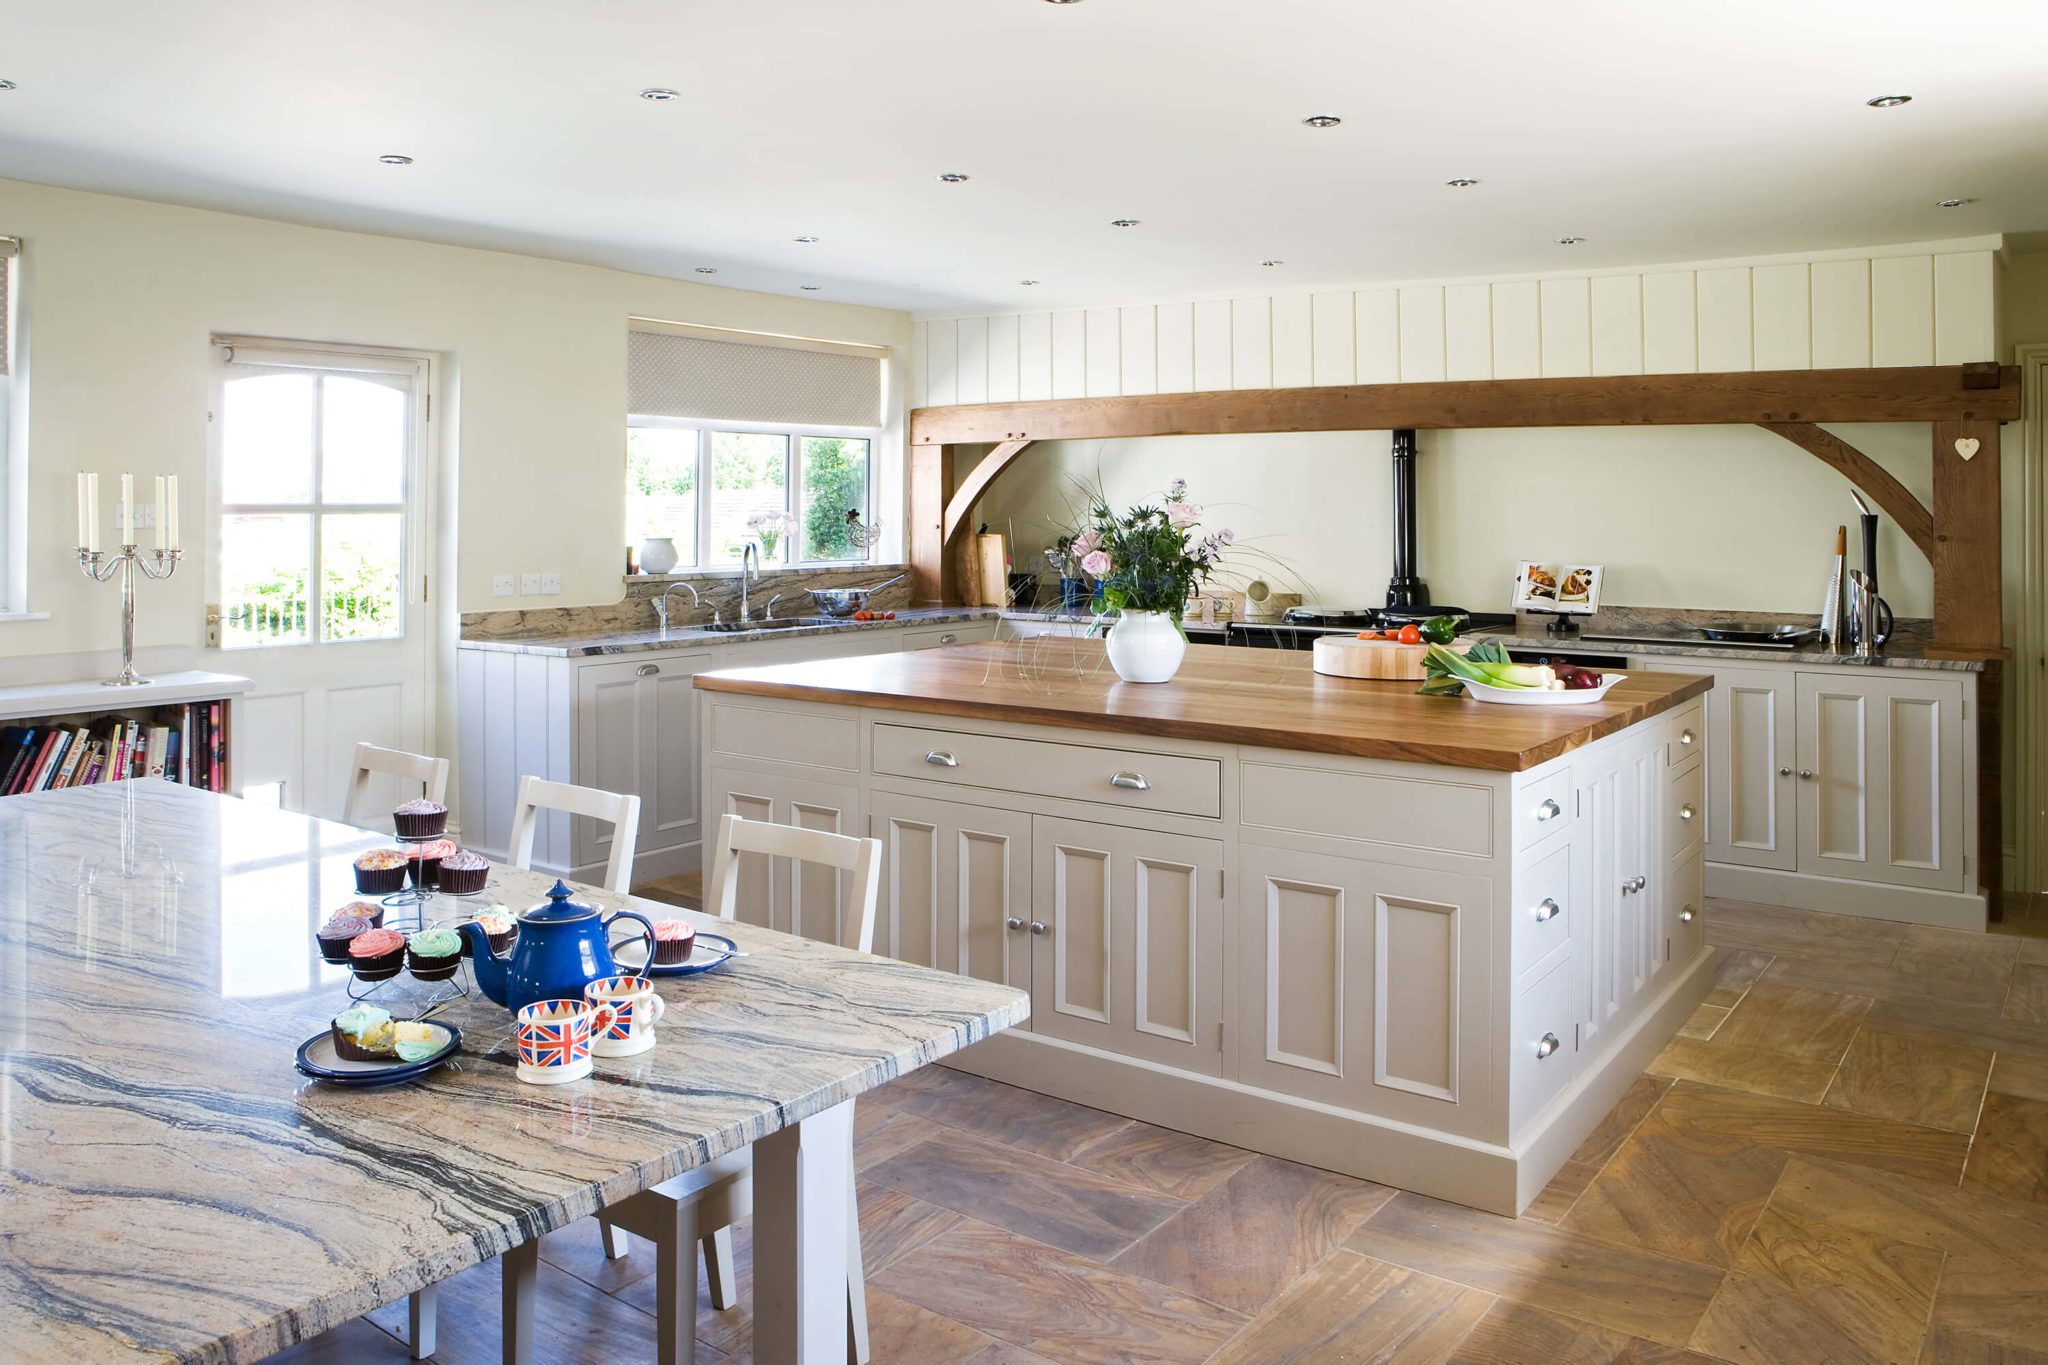 Gallery Bespoke Luxury Kitchens Freestanding Furniture